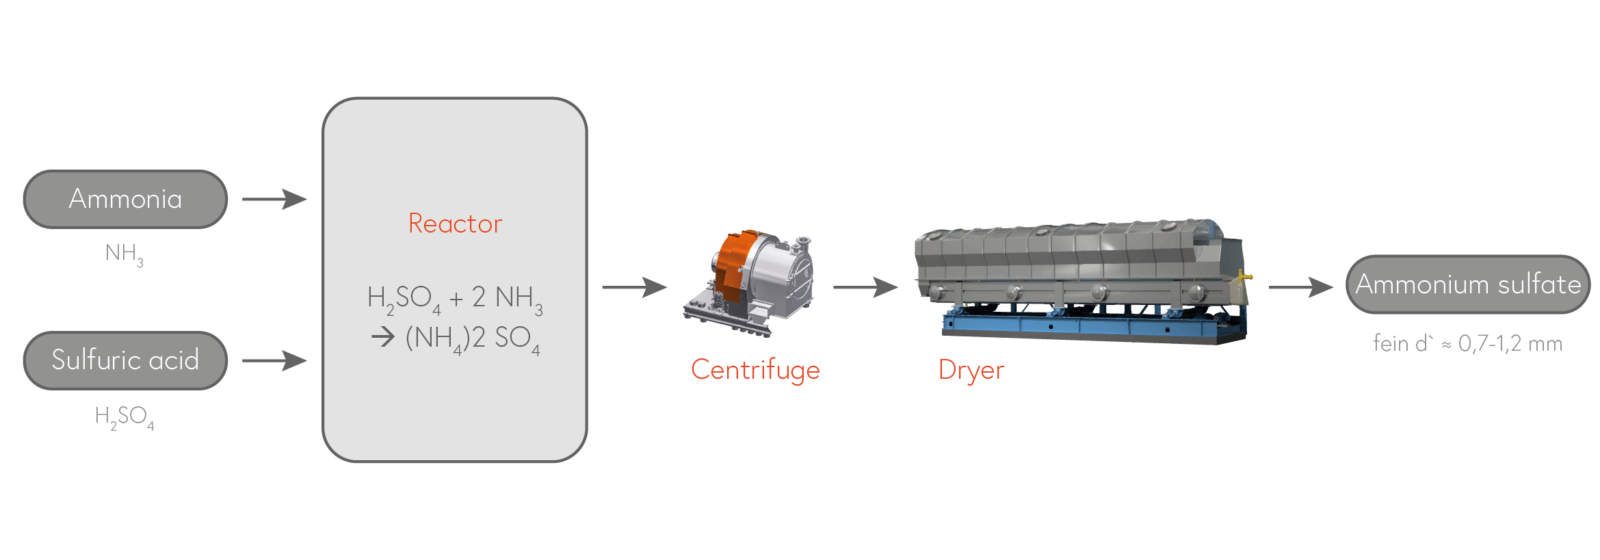 Synthetic production of ammonium sulfate out of ammonia gas and sulfuric acid.